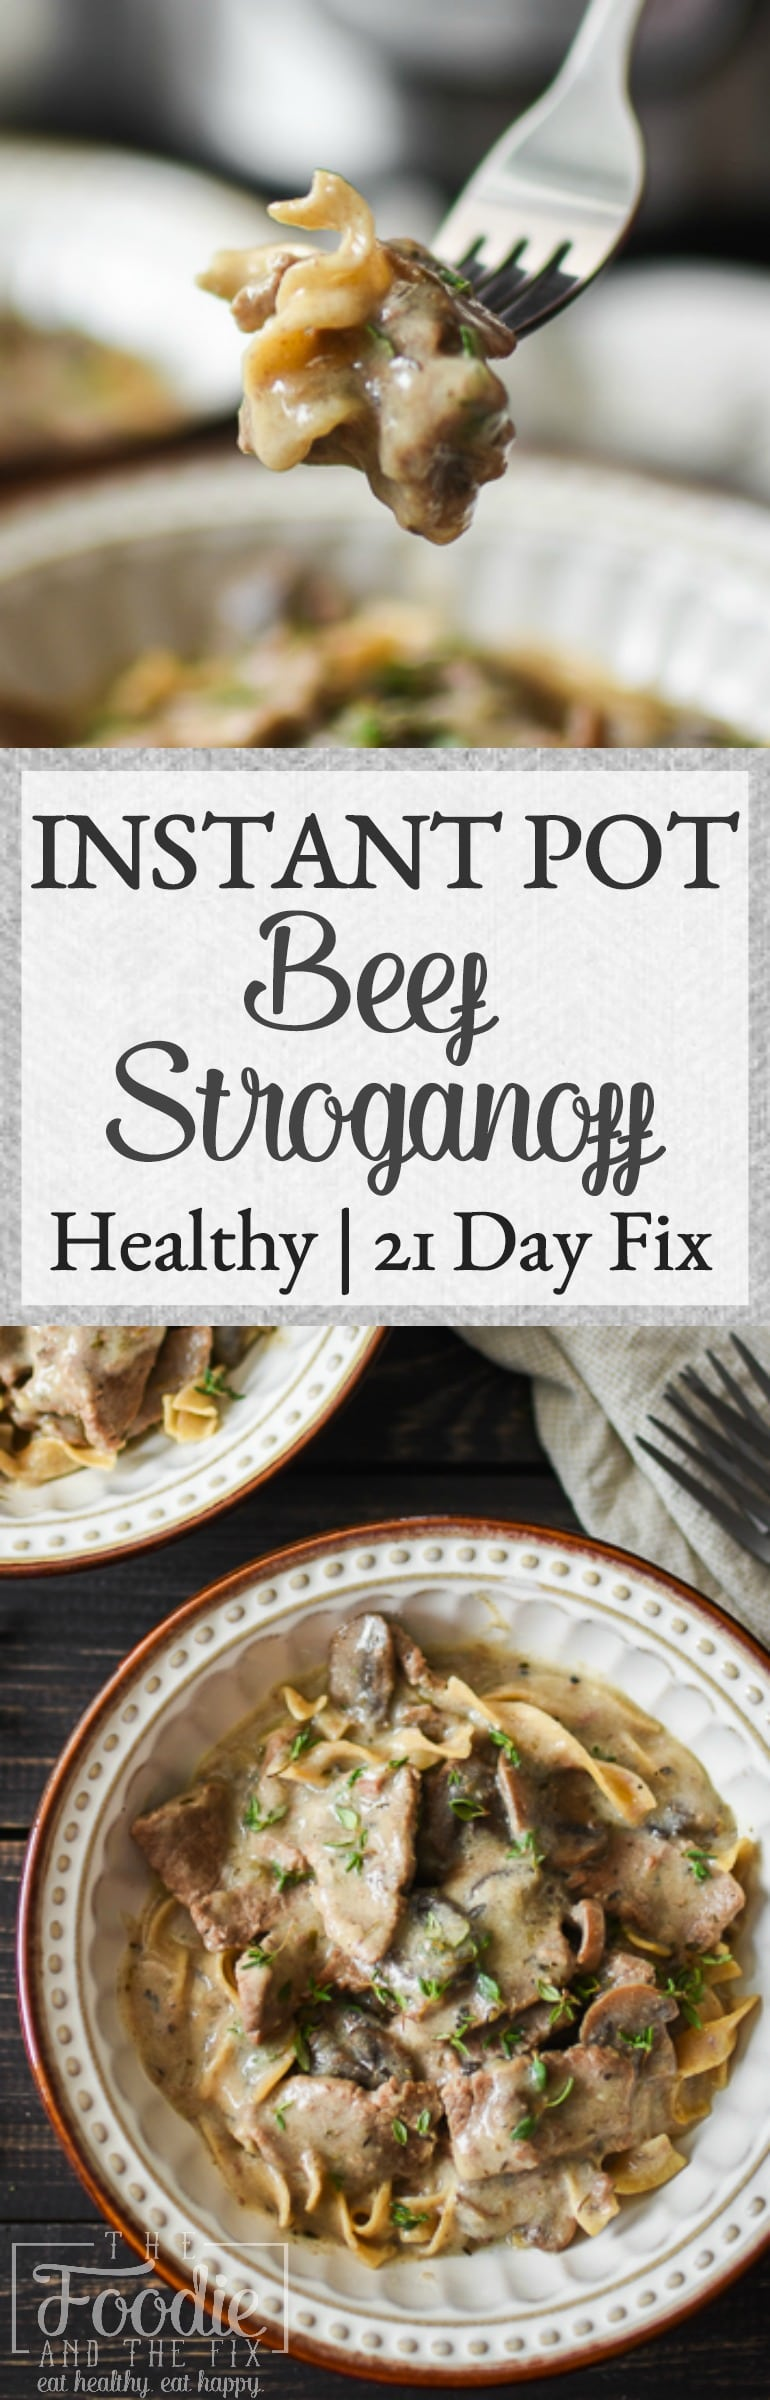 This 21 Day Fix Instant Pot Beef Stroganoff is my healthy take on the classic family dinner! There's nothing better than having tender beef and pasta in this creamy, mushroom-y sauce on your table in under an hour. #instantpot #21dayfix #kidfriendly #dinner #healthy